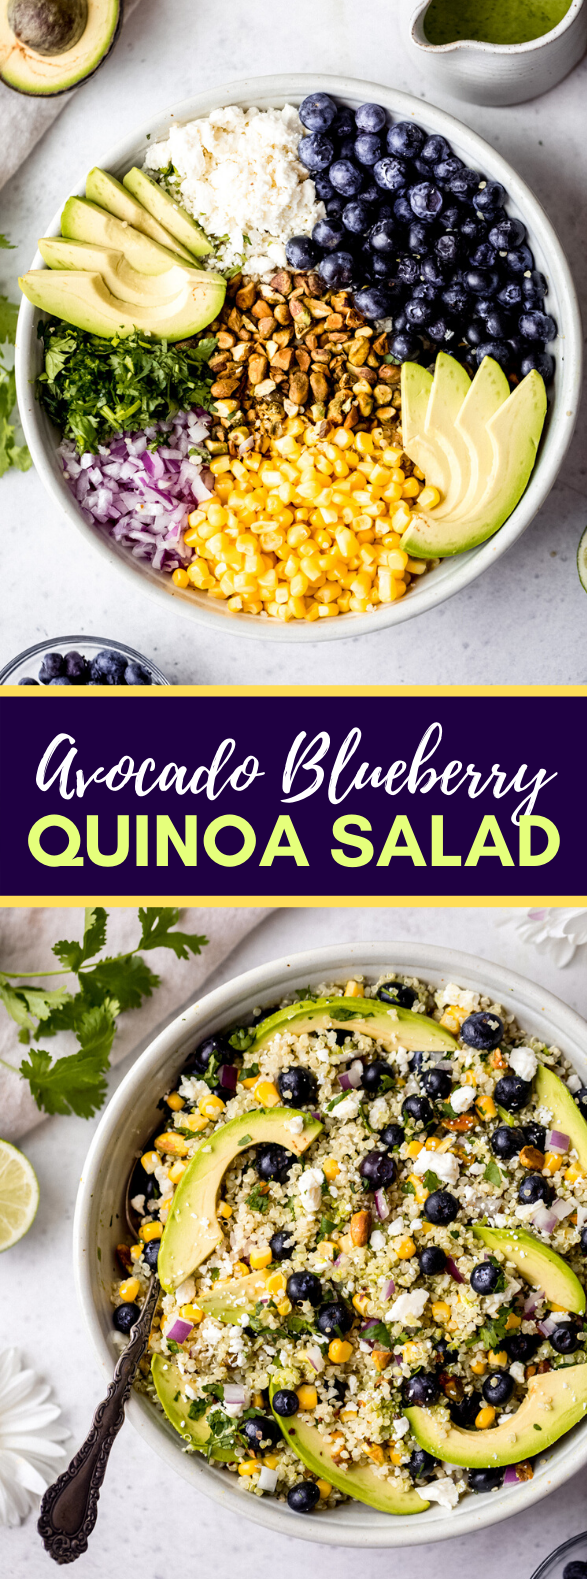 Avocado Blueberry Quinoa Salad #vegetarian #healthy